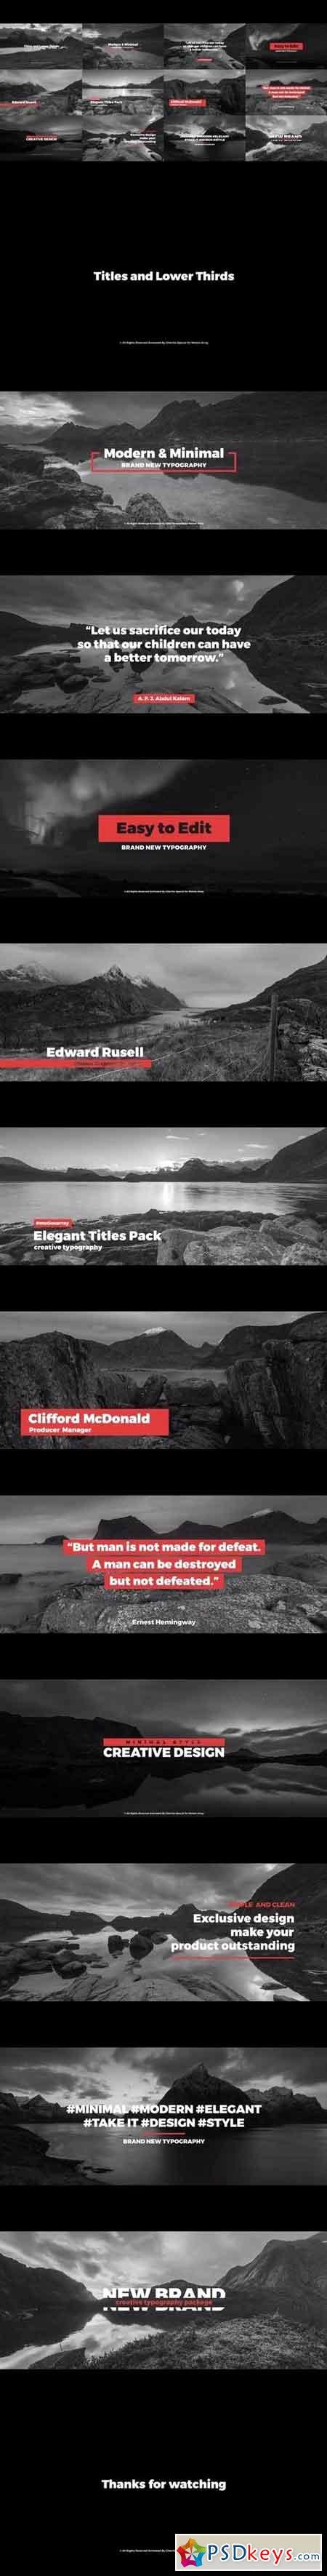 Free Lower Third Templates Photoshop Best Of Titles and Lower Thirds Premiere Pro Templates Free Download Shop Vector Stock